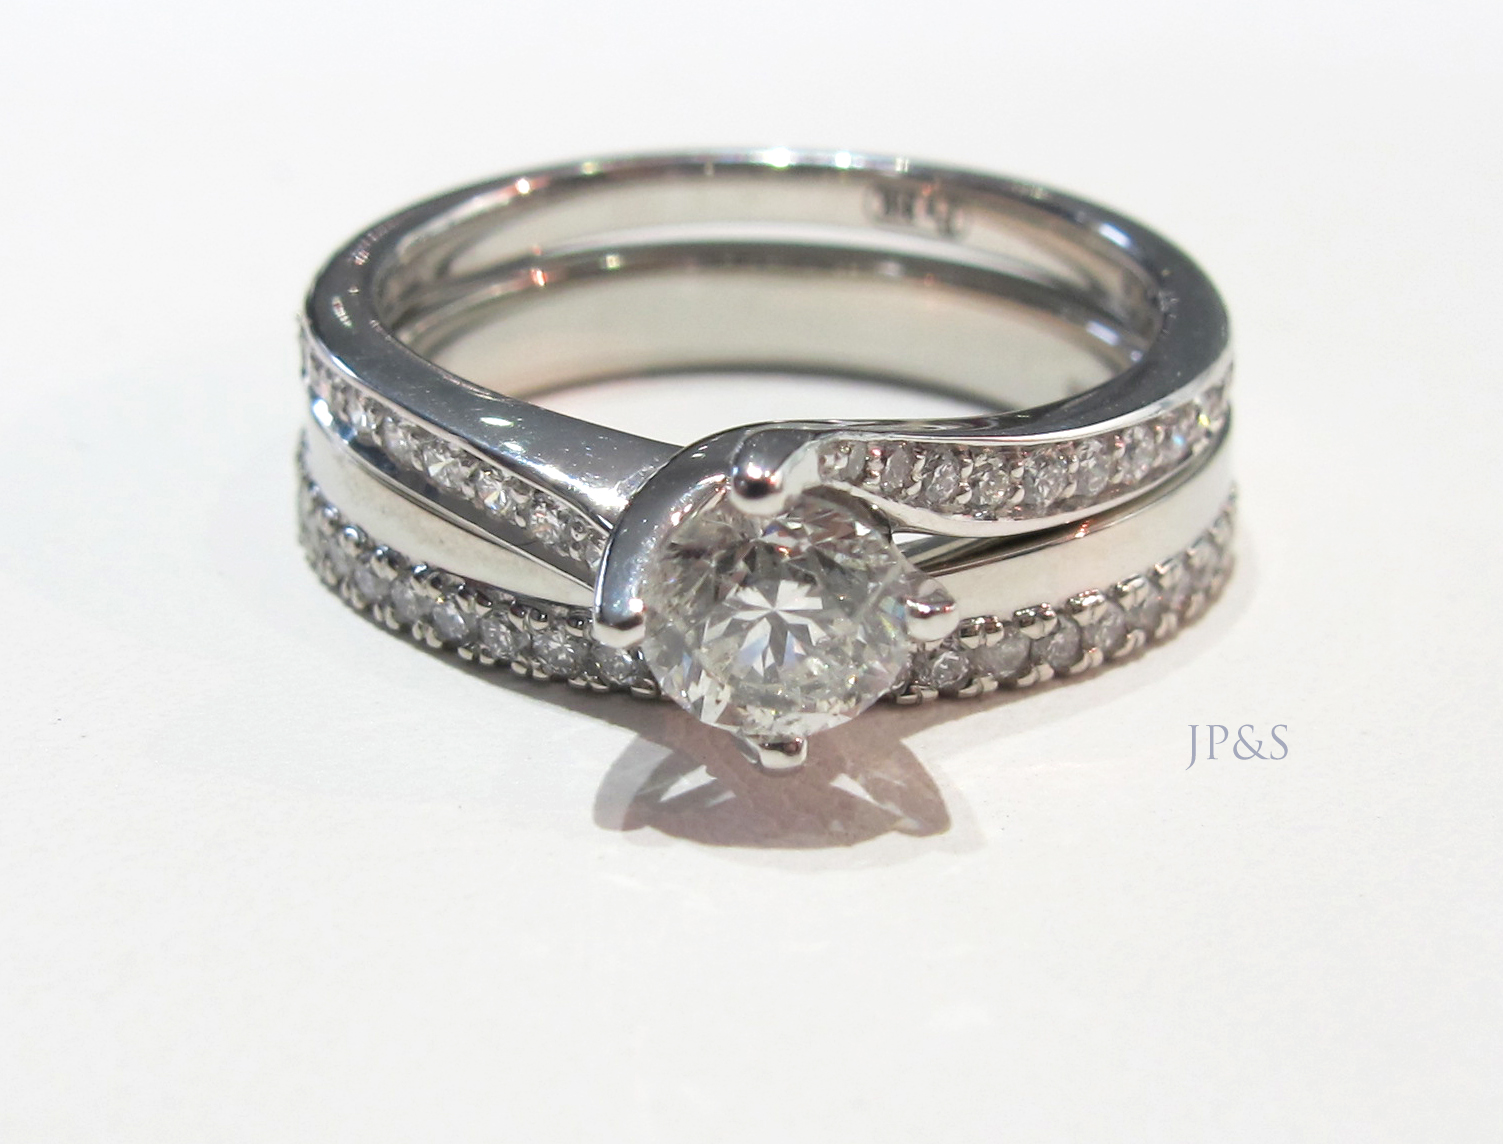 Getting Married Soon? Guide to Wedding Rings